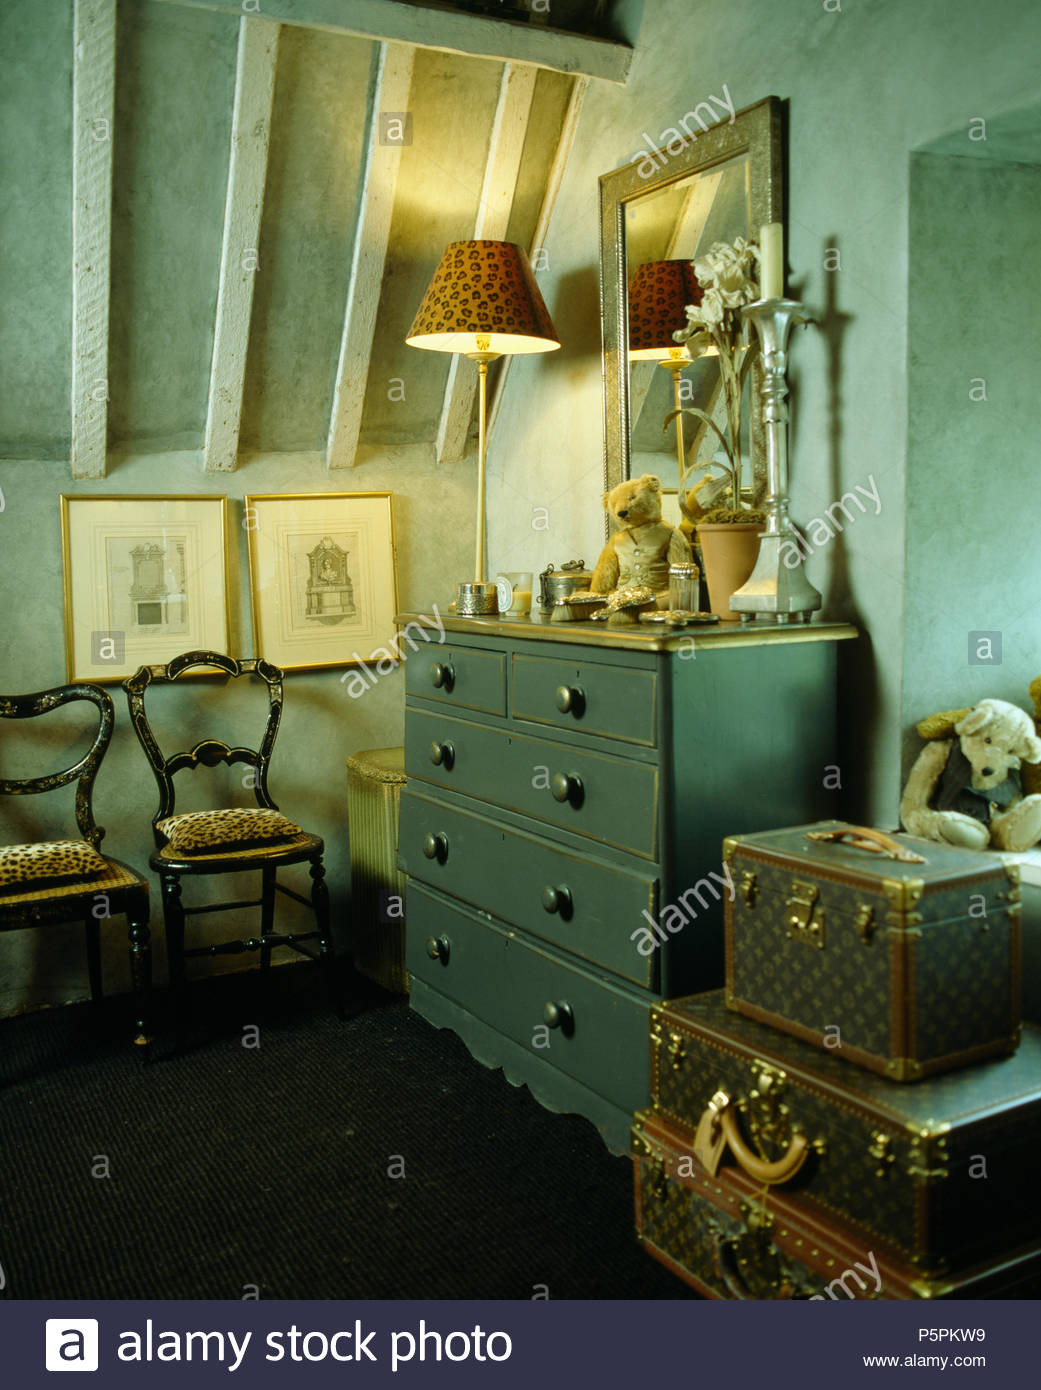 painted chest of drawers and antique chairs in pale turquoise attic room with stack of vintage suitcases P5PKW9